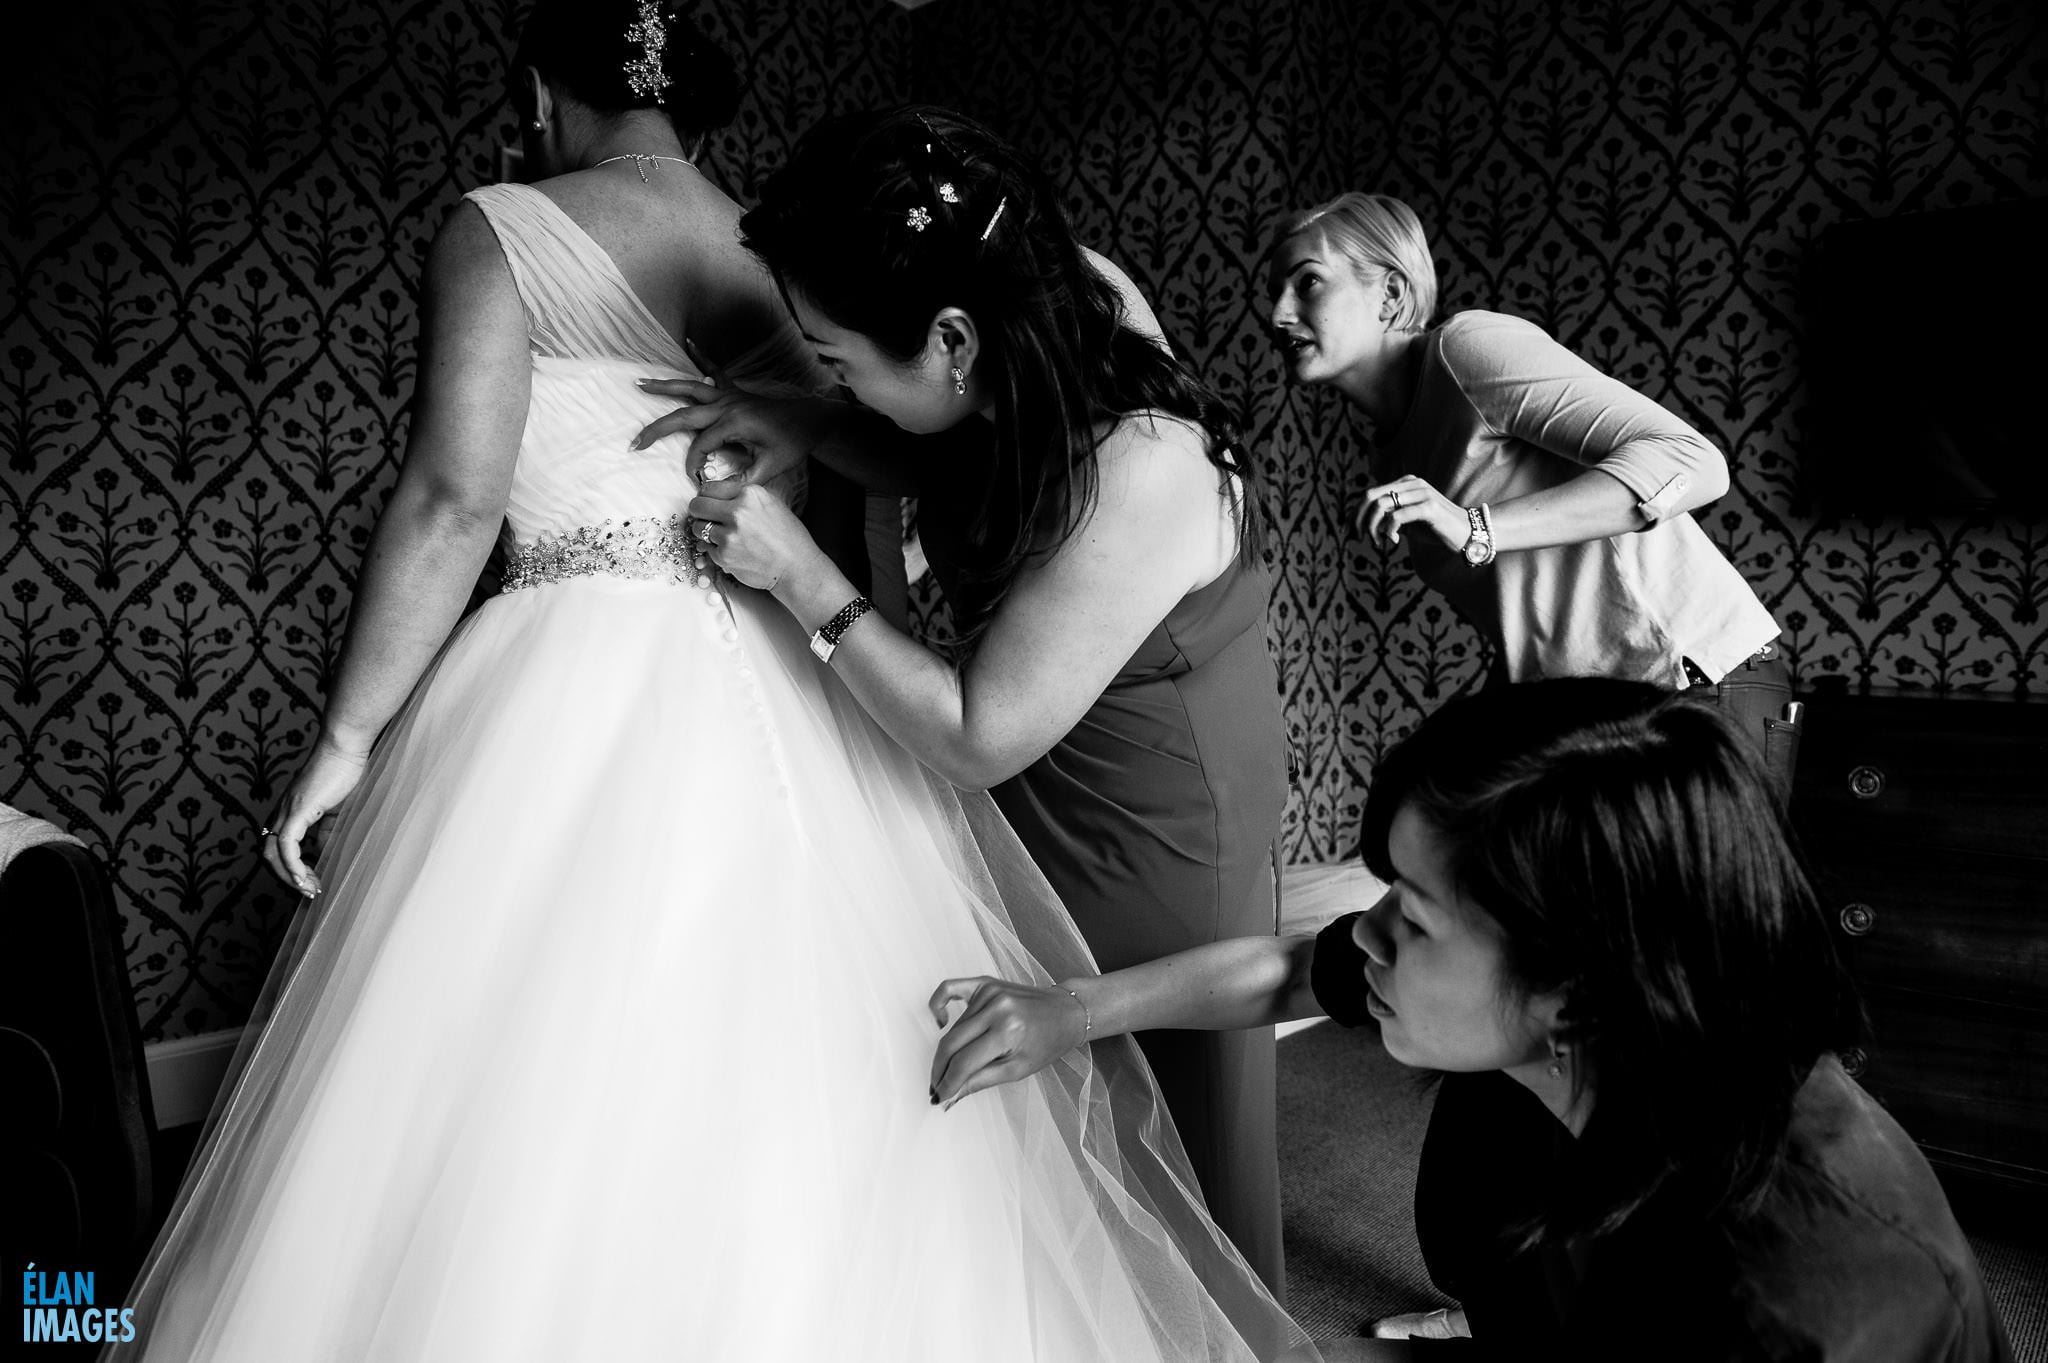 Homewood Park Wedding near Bath - Award Winning Wedding Photograph Bride Getting Ready